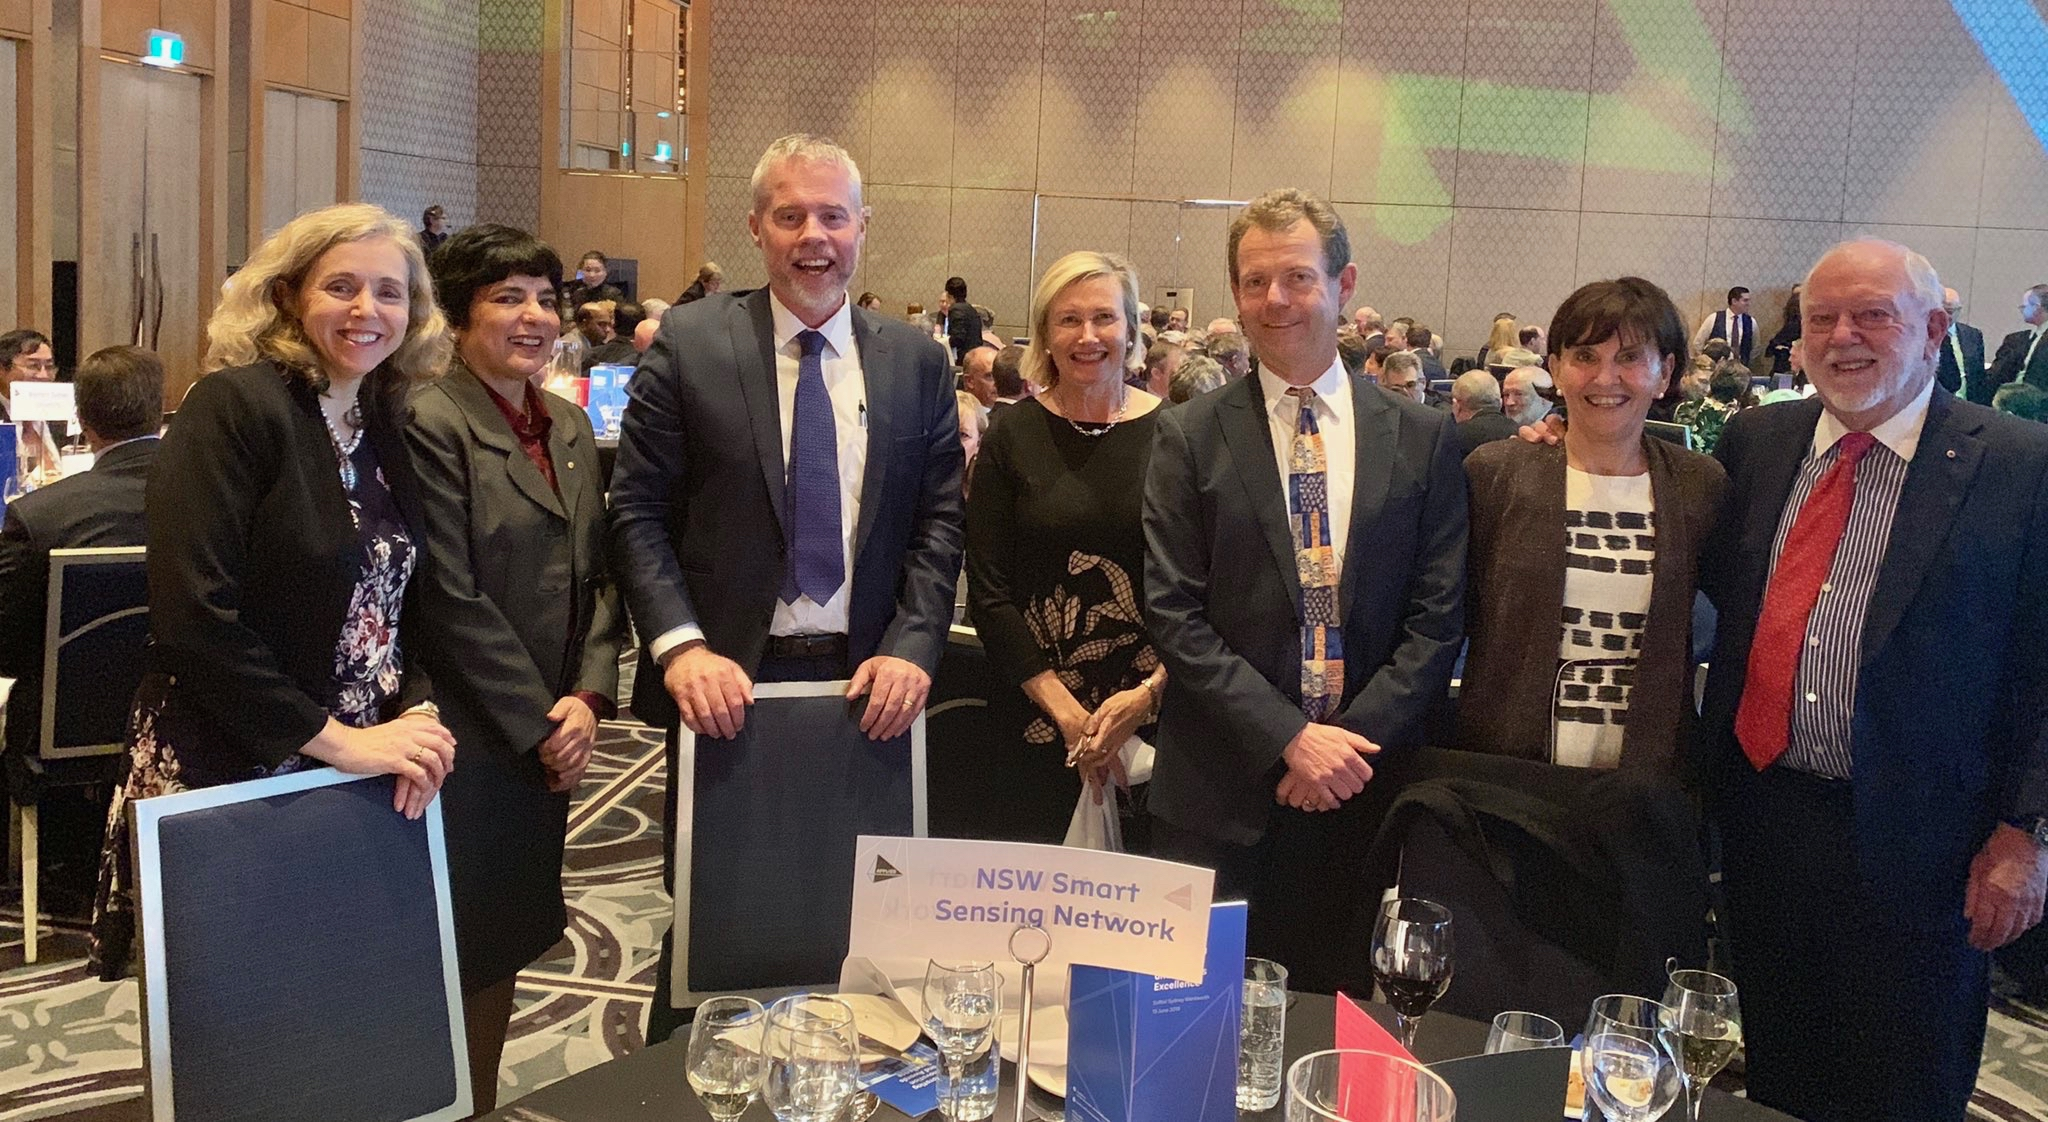 Jo White, Dr Marlene Kanga, Professor Ben Eggleton, Liz Dibbs, Peter Runcie, Dr Susan Pond, Dr Paul Scully-Power. NSSN at the Australian Academy of Technology and Engineering Gala.